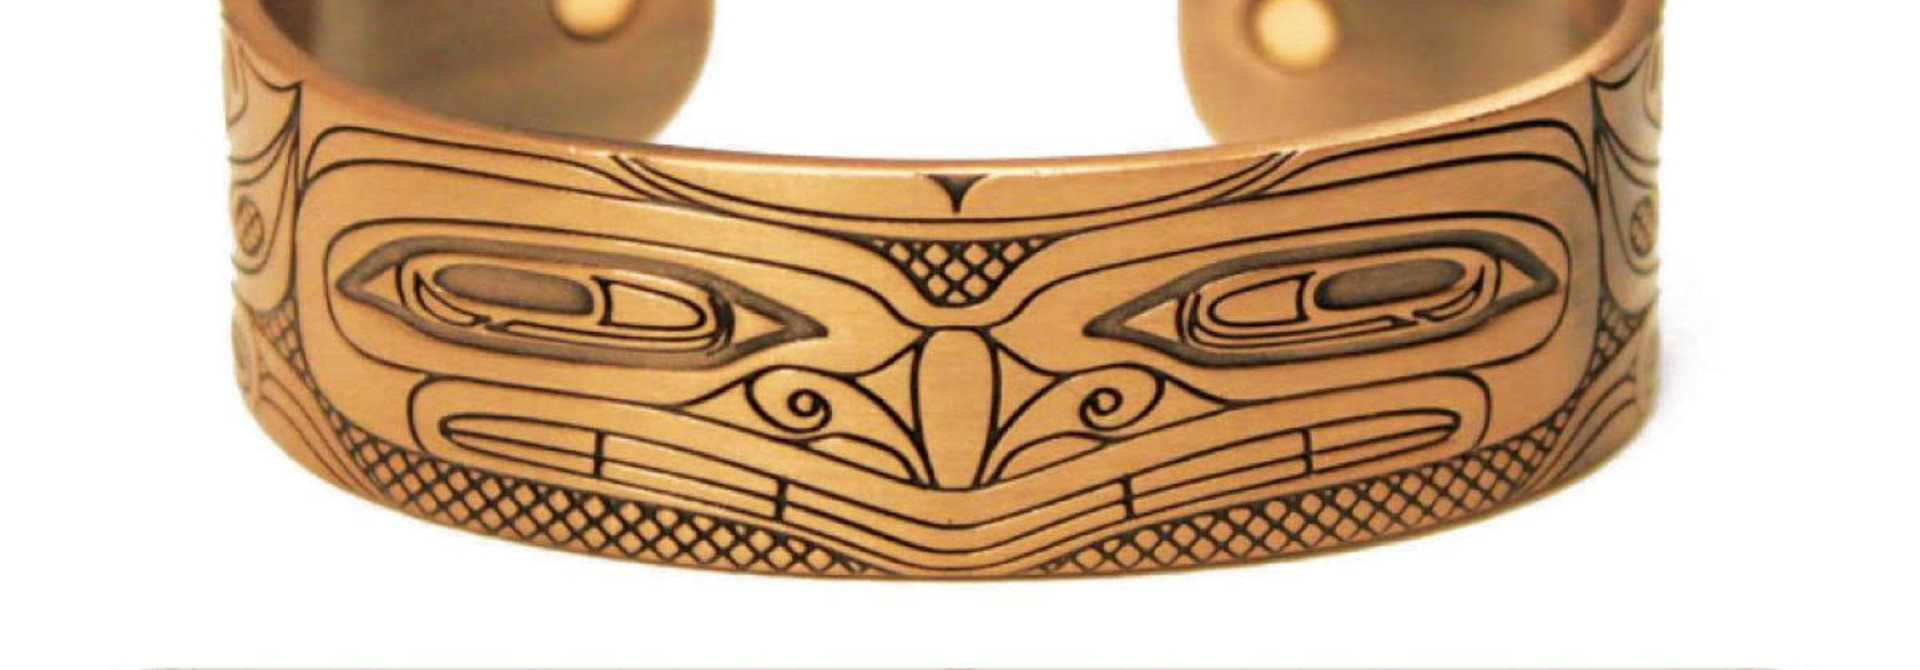 Copper Bracelet - Grizzly Bear by Andrew Williams